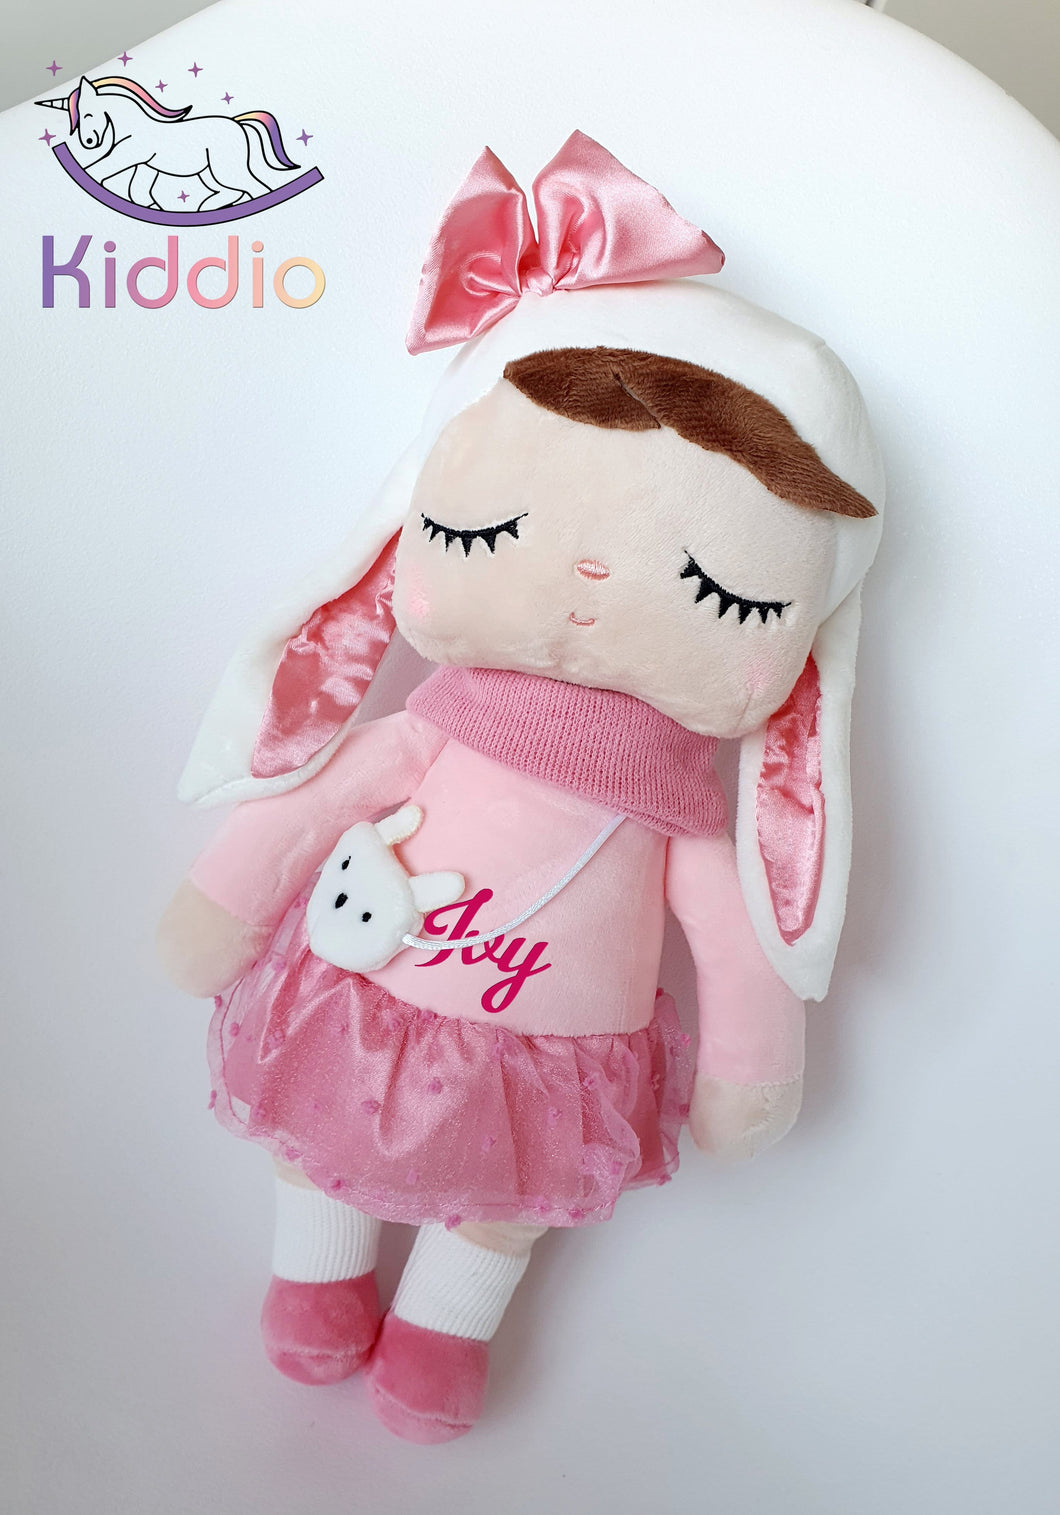 Personalized Metoo Rag Dolls freeshipping - Kiddio